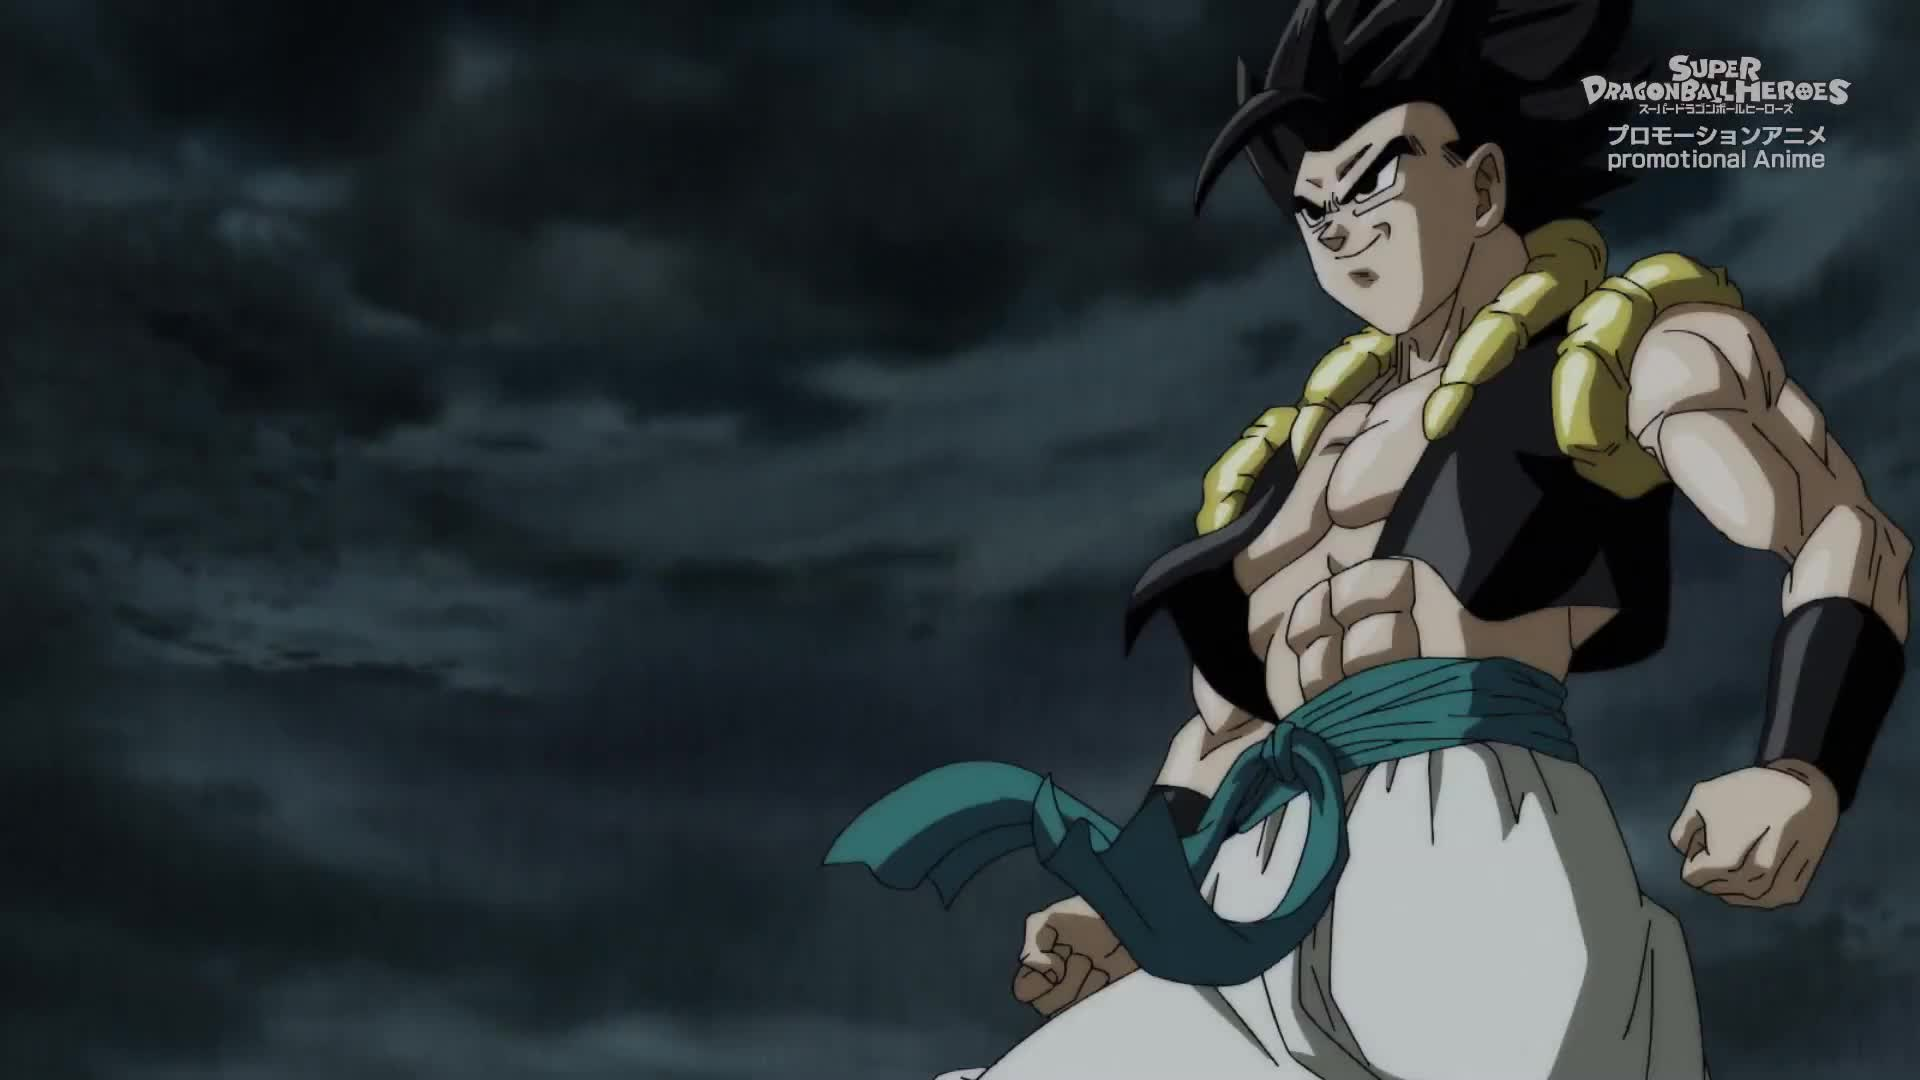 y2mate.com - super_dragon_ball_heroes_episode_17_gogeta_returns_iws-xMZVPRw_1080p_0734.jpg